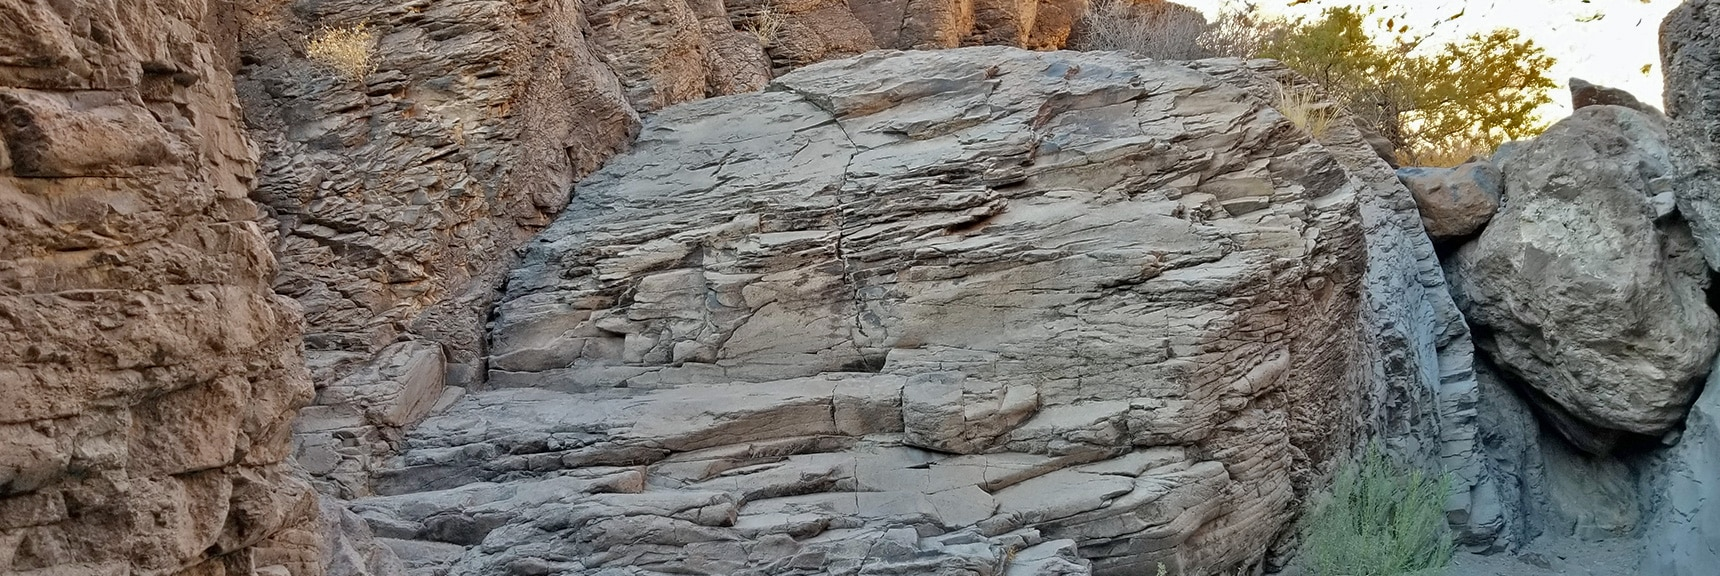 Huge Dry Waterfall Barrier Before Main Petroglyph Area | Petroglyph Canyon | Sloan Canyon National Conservation Area, Nevada